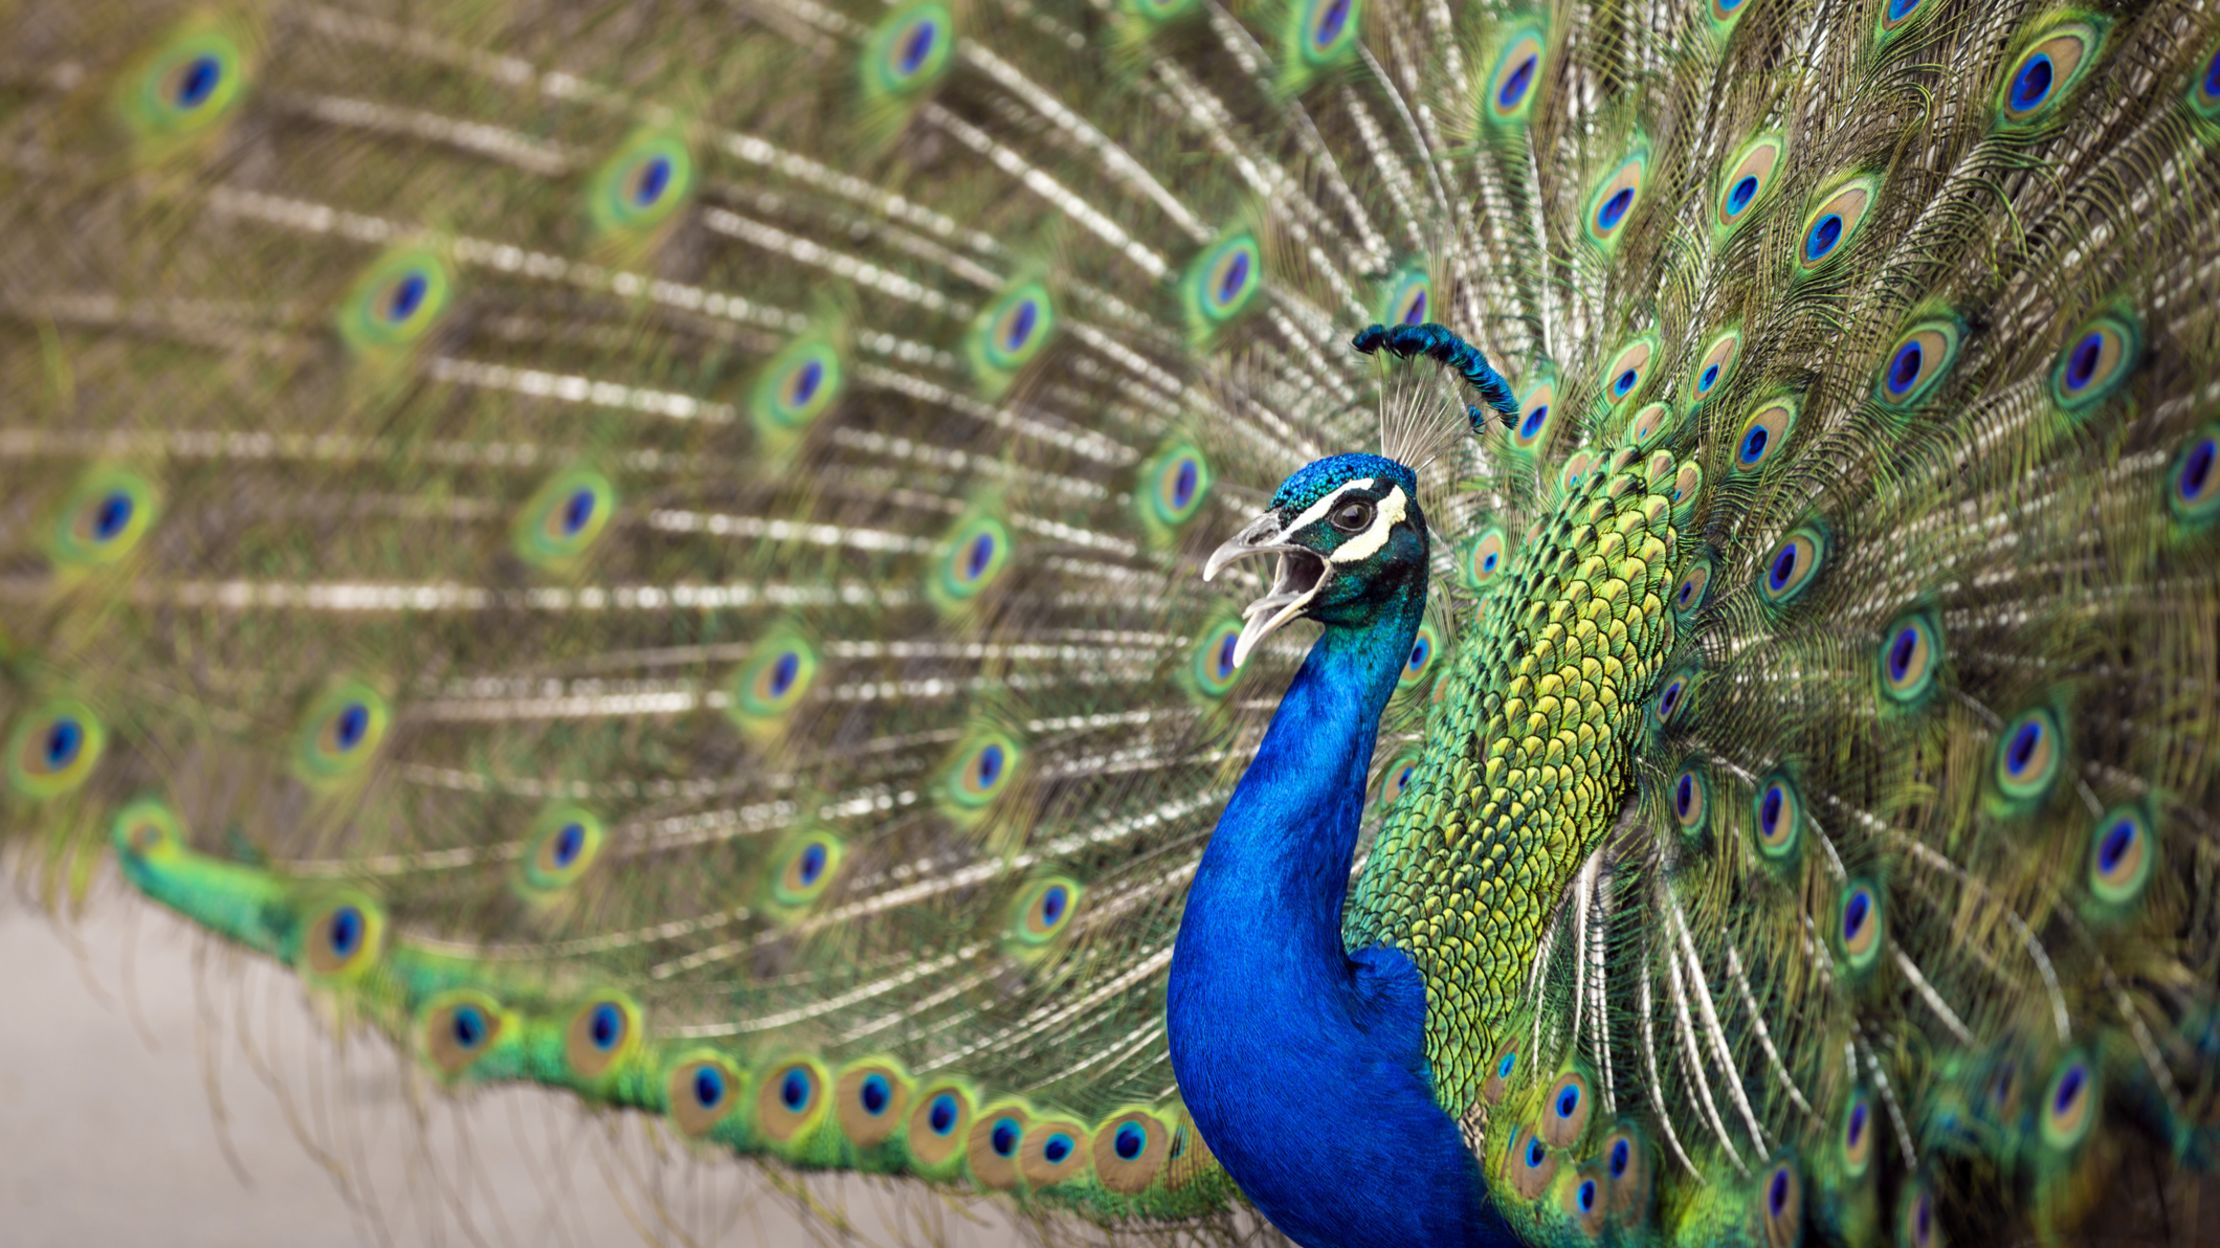 Face Eyes Photography Nature Peacocks Birds Colorful: 9 Feathery Facts About Peacocks